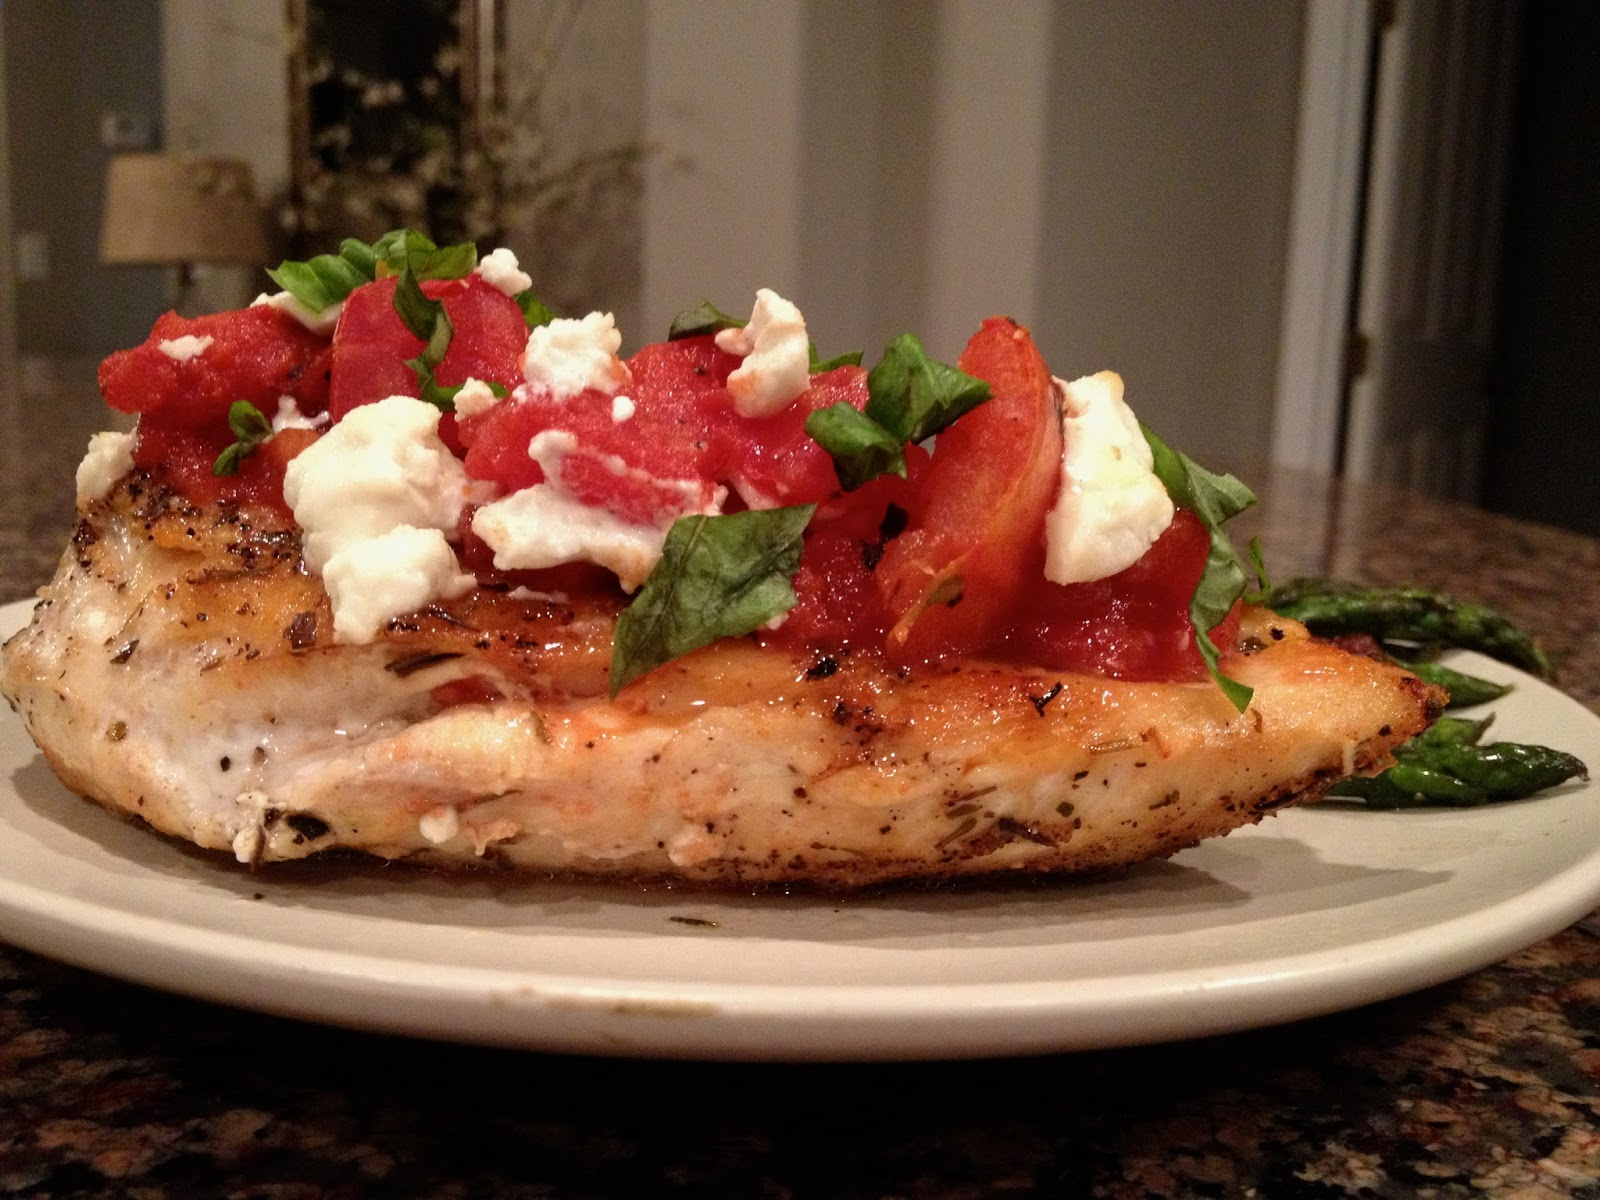 ... , but smothered in fire roasted tomatoes, goat cheese and basil. Yum